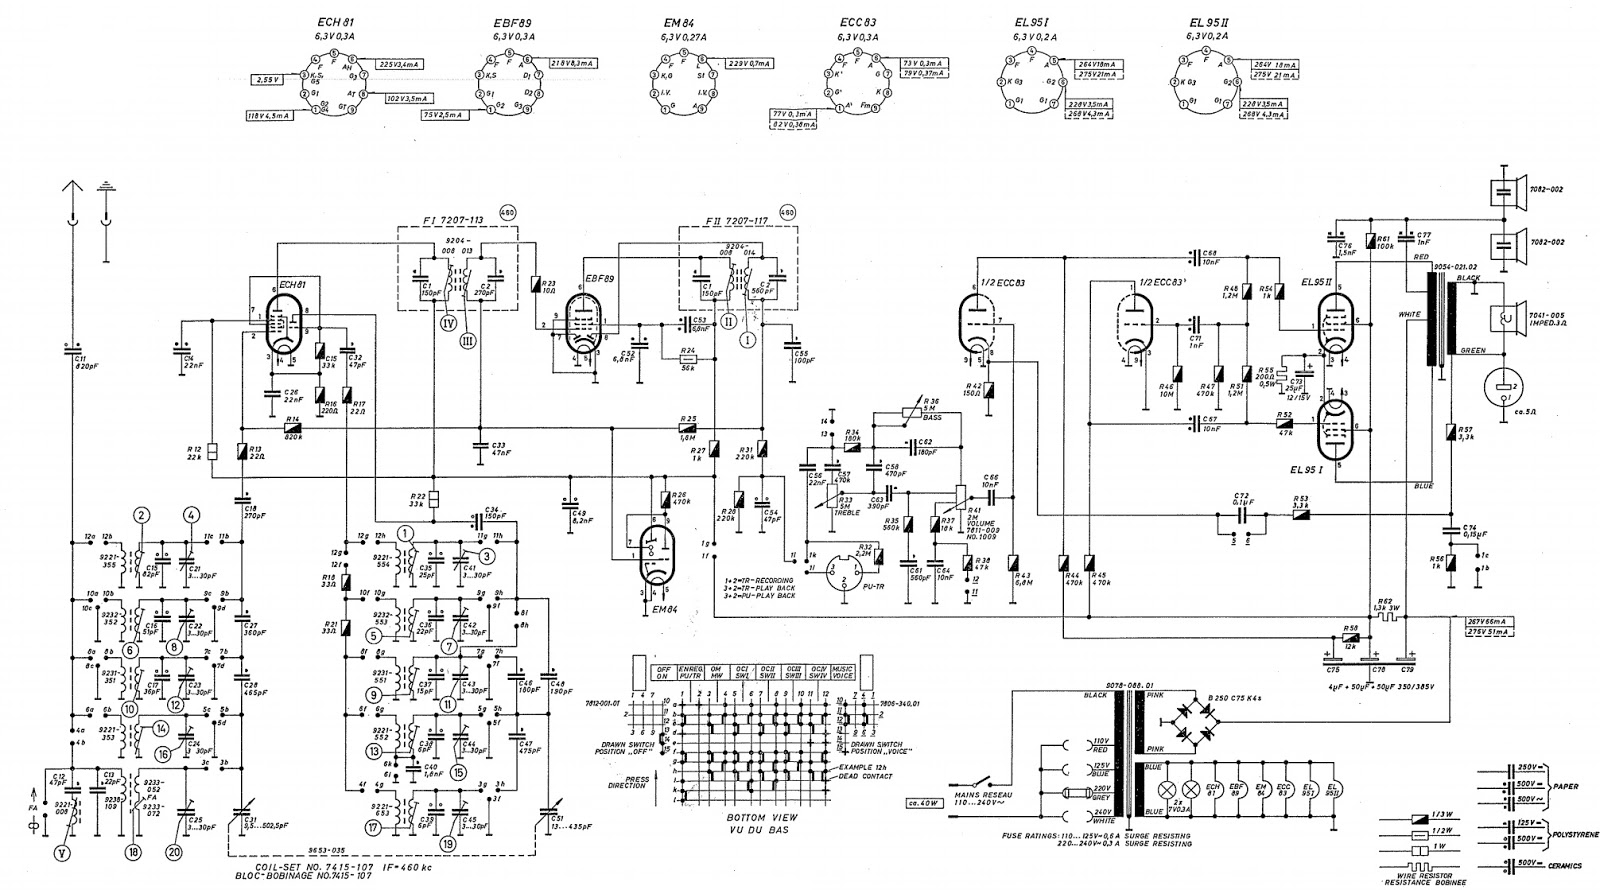 Valve Radio Circuit Diagrams Ic Wire Highgainamplifier Amplifiercircuit Diagram Seekiccom Grundig 3160we 3165we